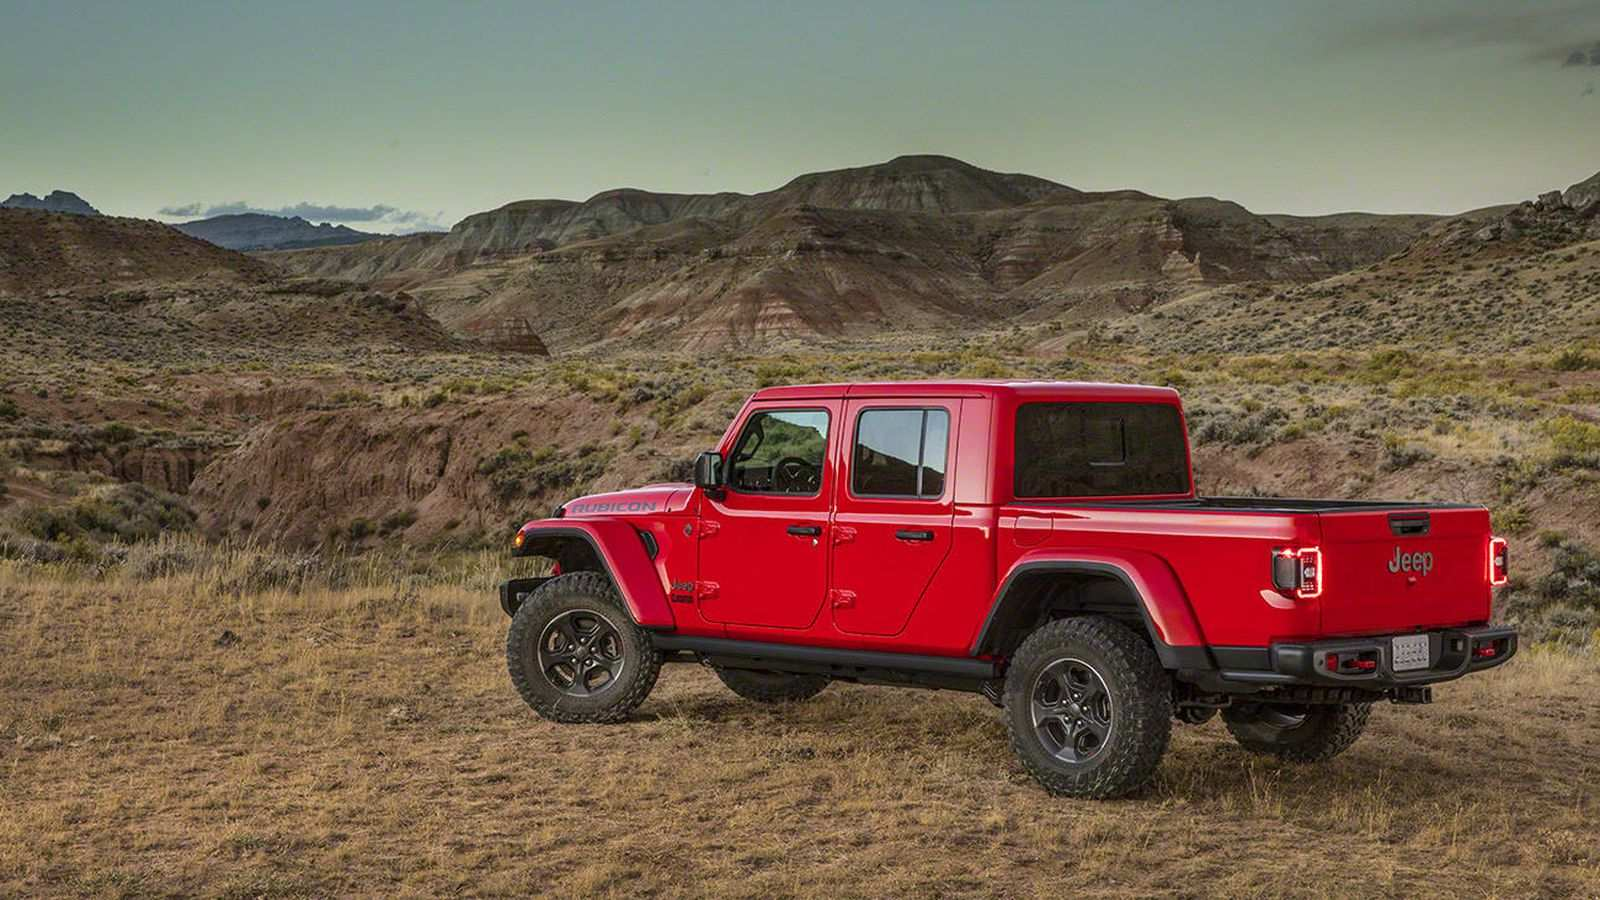 64 Concept of Jeep Rubicon Truck 2020 Reviews for Jeep Rubicon Truck 2020